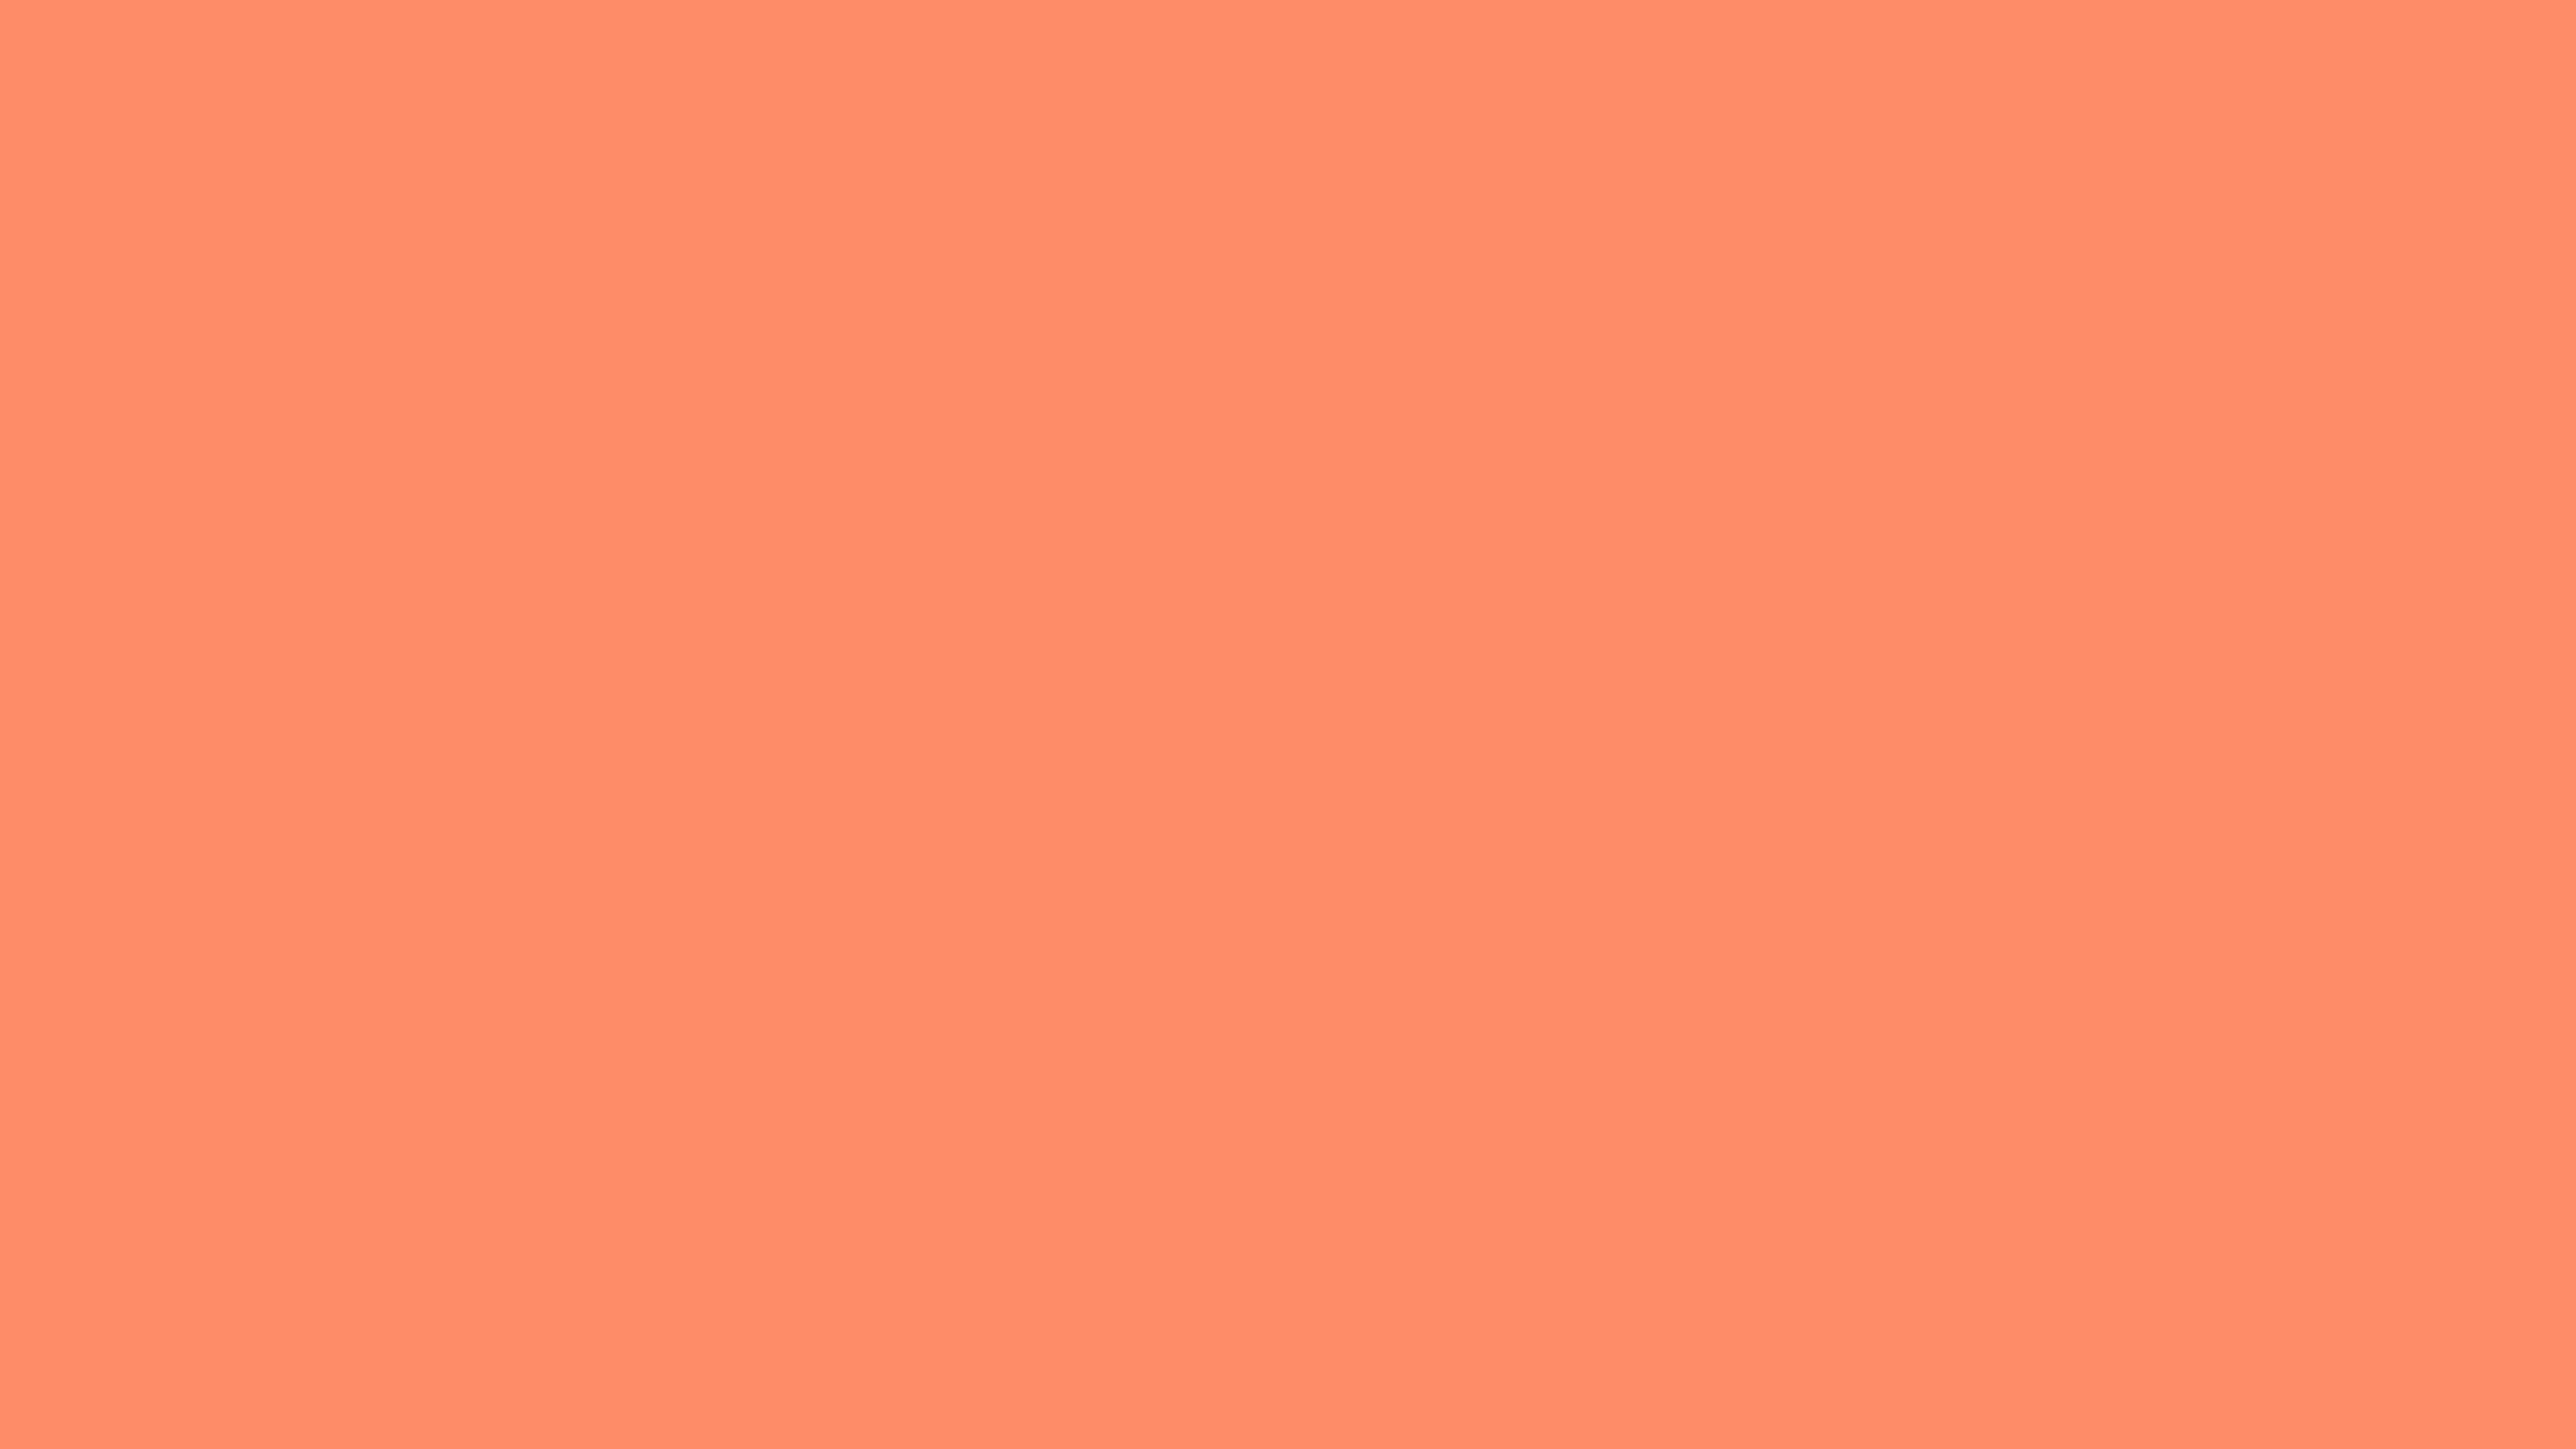 4096x2304 Salmon Solid Color Background